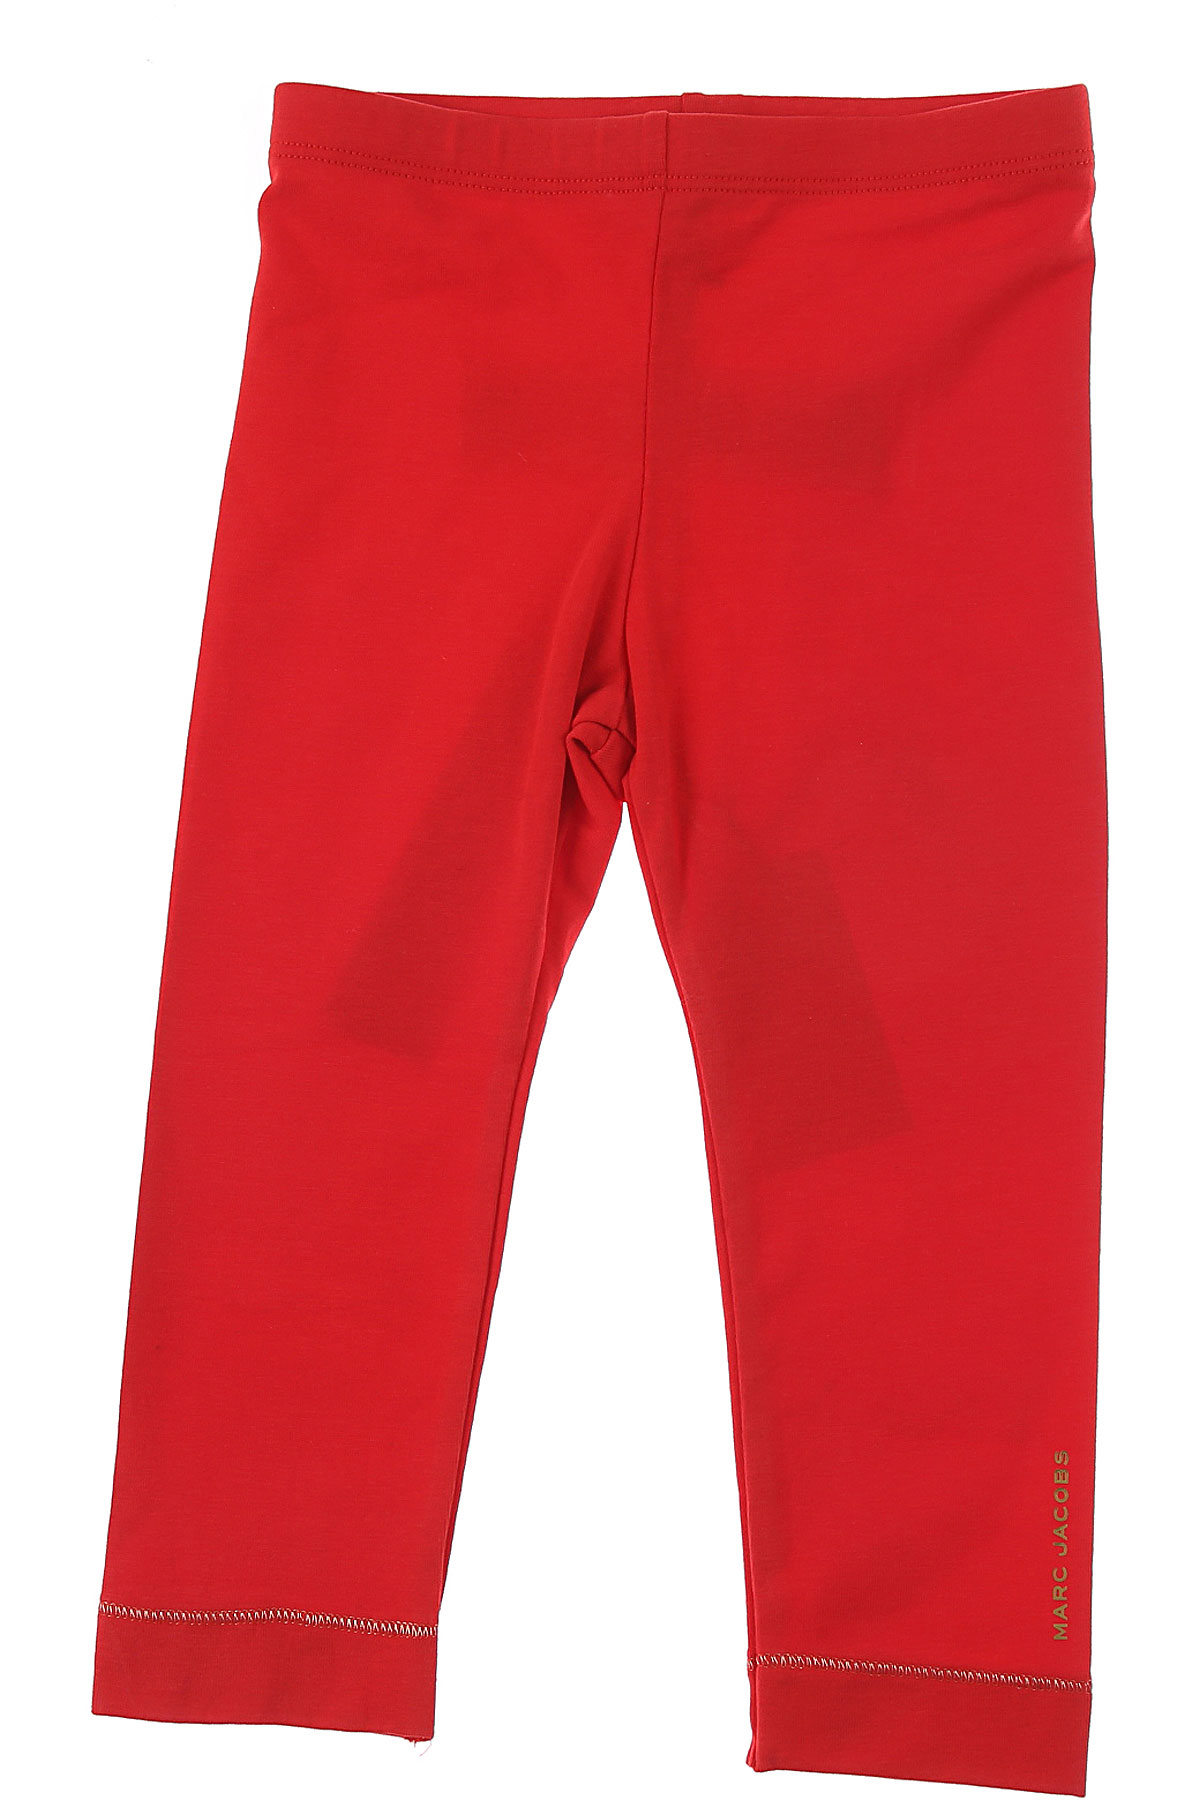 Marc Jacobs Baby Pants for Girls On Sale, Red, Cotton, 2019, 12M 18M 2Y 3Y 6M 9M